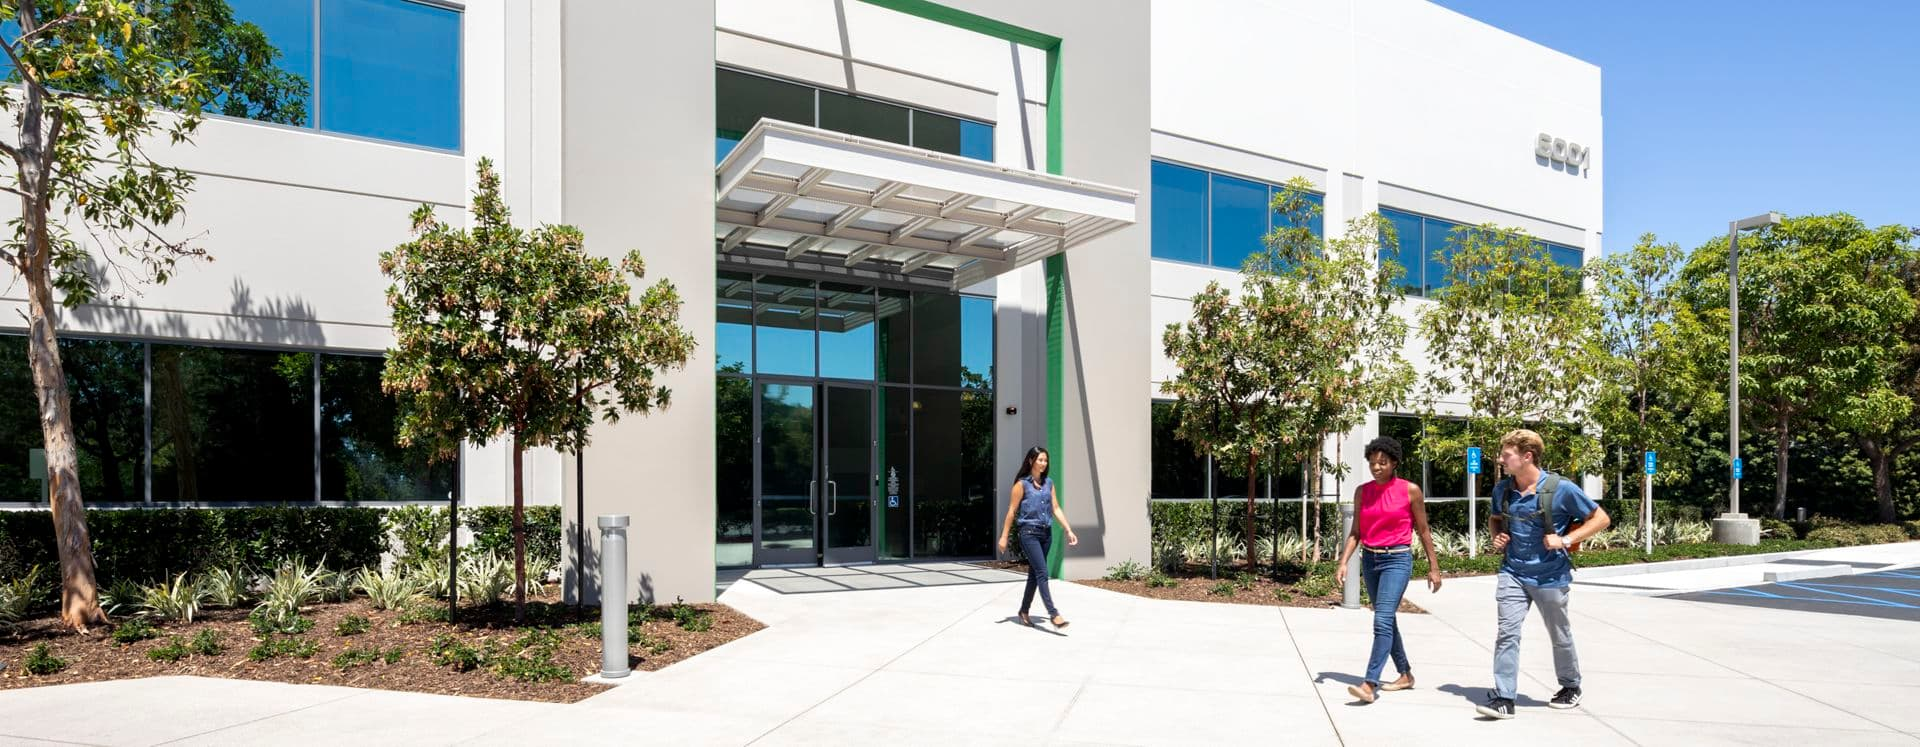 Lifestyle photography of the building entry at Oak Canyon Business Center - 6001 Oak Canyon in Irvine, CA